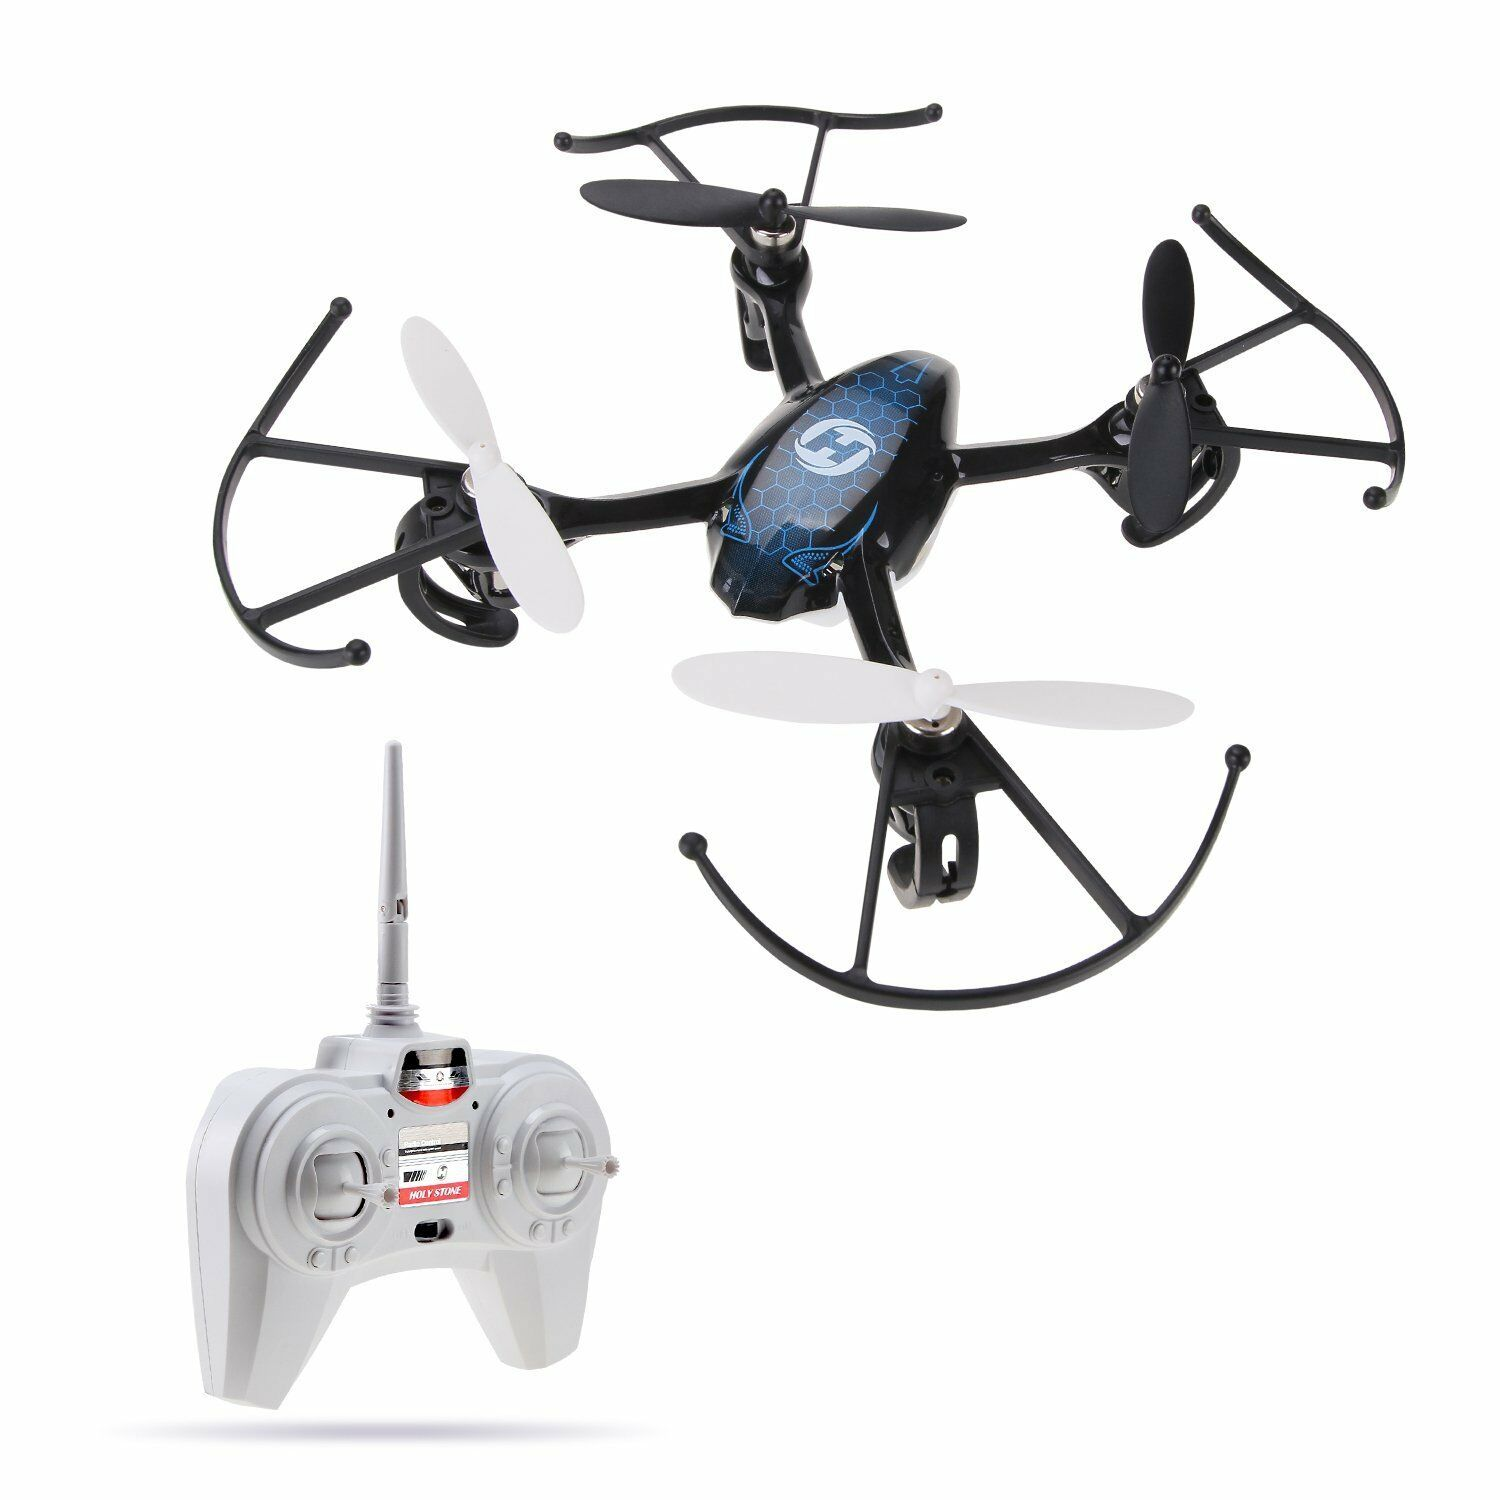 Holy Stone HS170 Prossoator Mini RC Helicopter Drone 2.4Ghz 6-Axis  Gyro 4 Channels  prezzo all'ingrosso e qualità affidabile